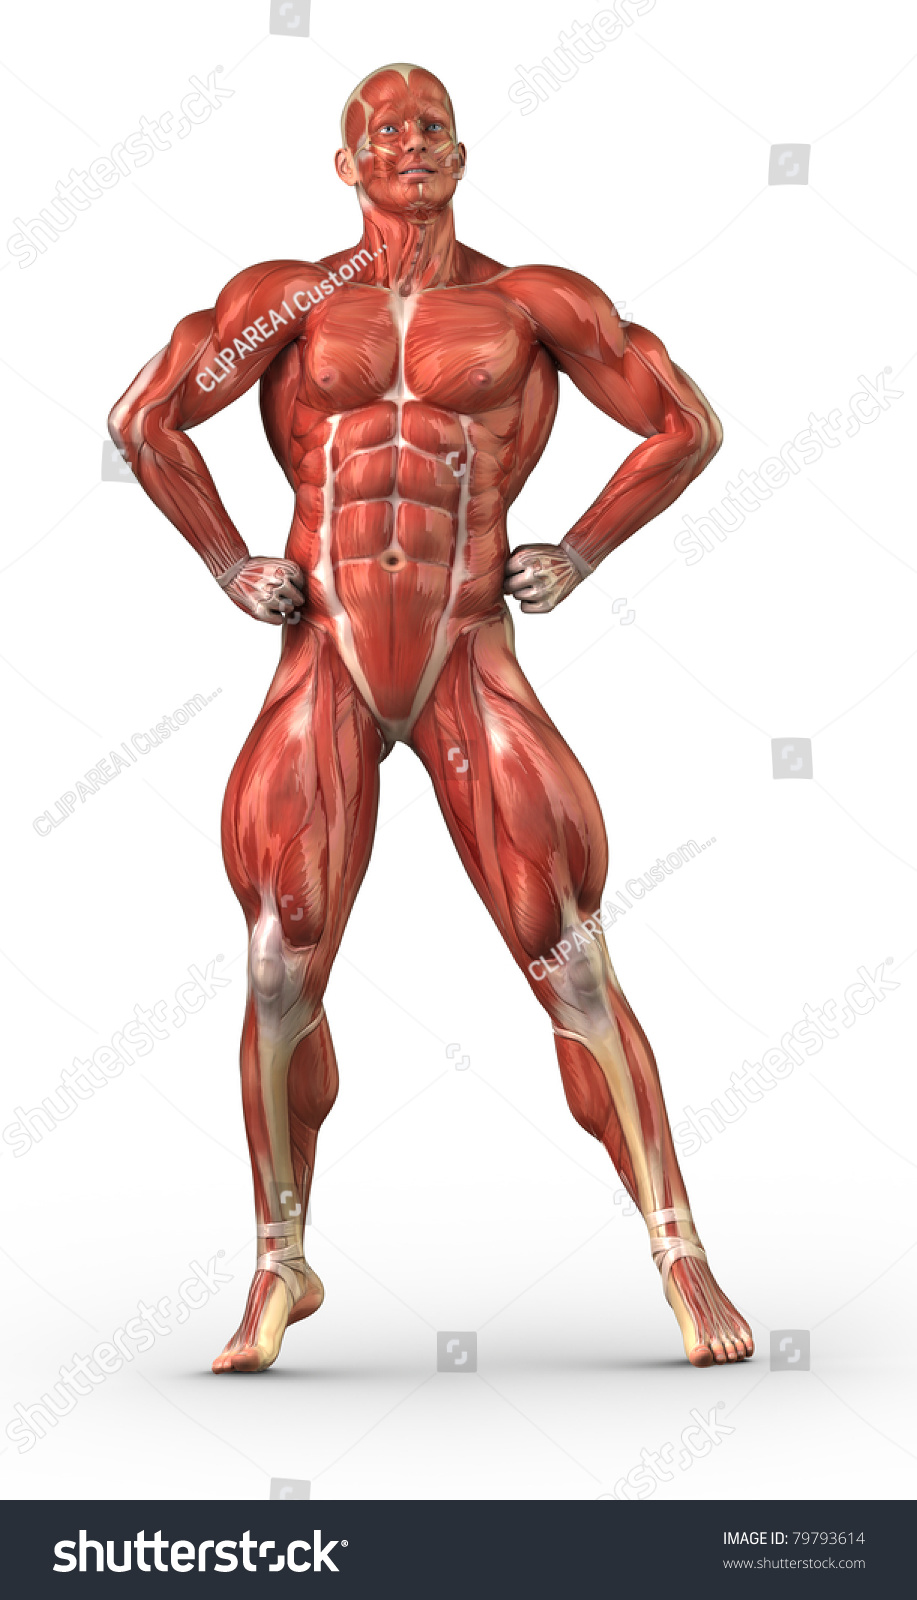 male anatomy muscular system bodybuilder position stock, Muscles